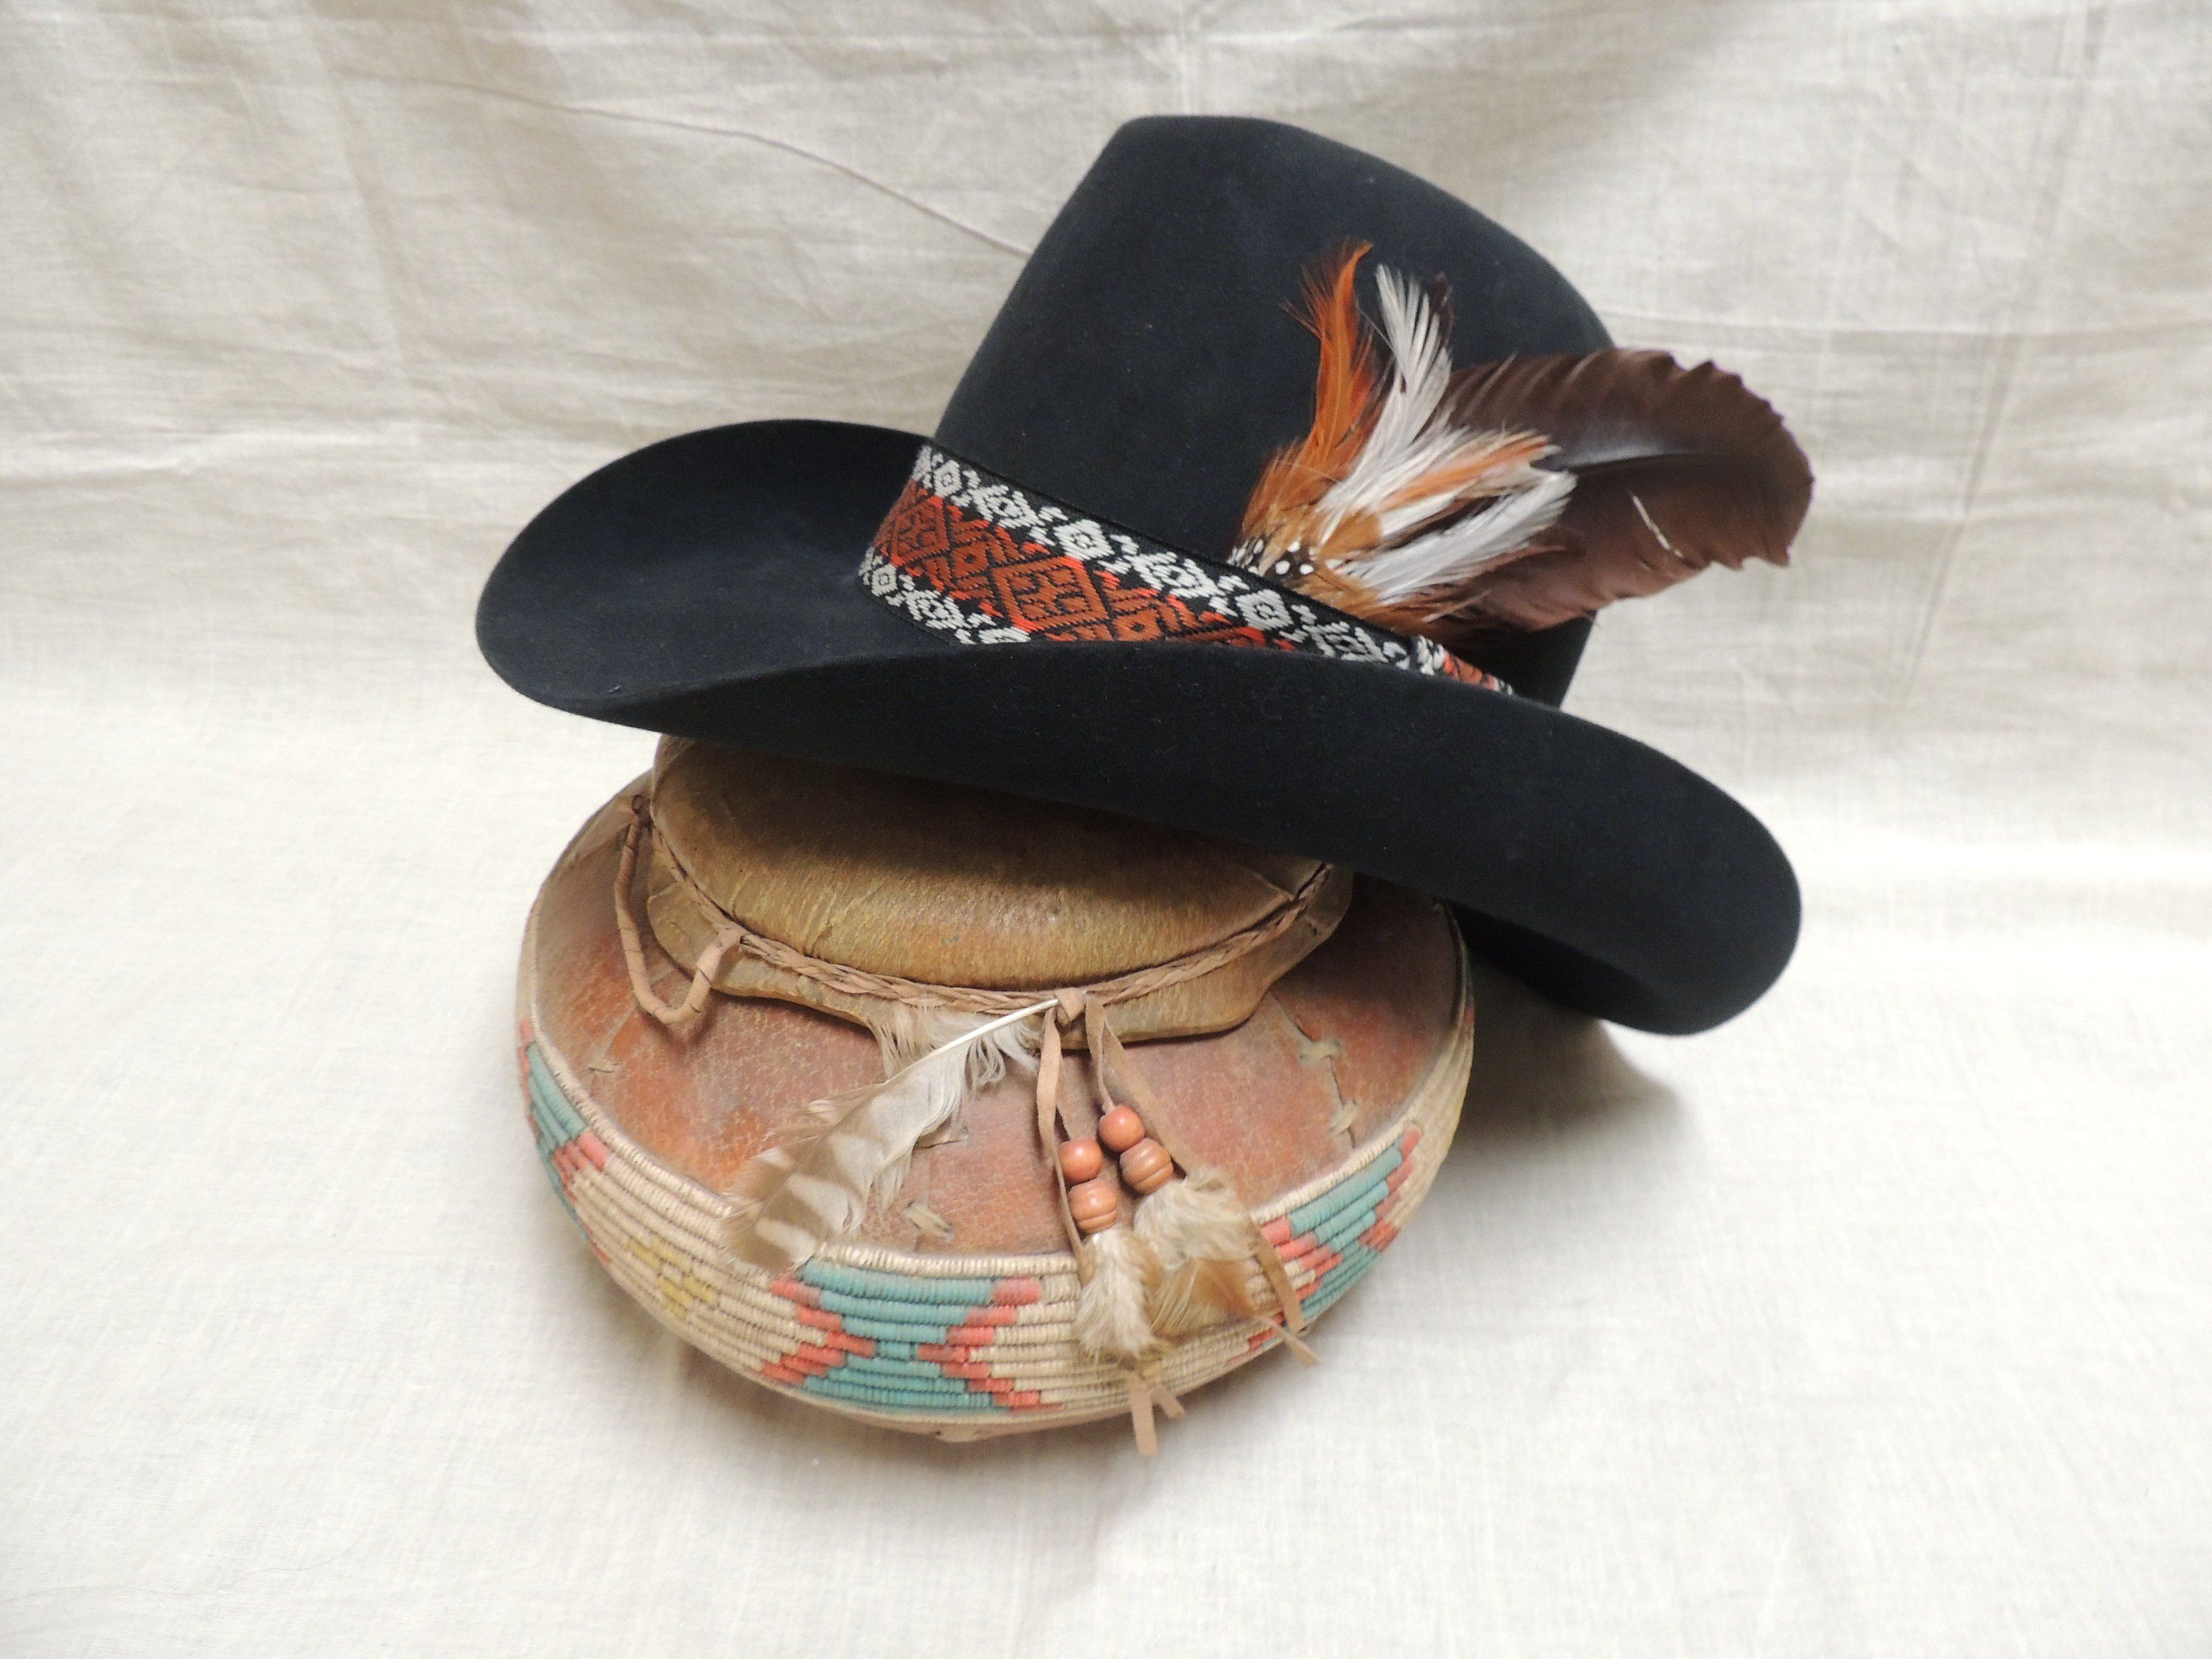 478eae3c Vintage 1960's, 1970's Stetson Cowboy Hat XXXXX Beaver Felt, with Original  JBS Lasso Pin and Hatband with Feathers by TheOwlandtheCrow on Etsy